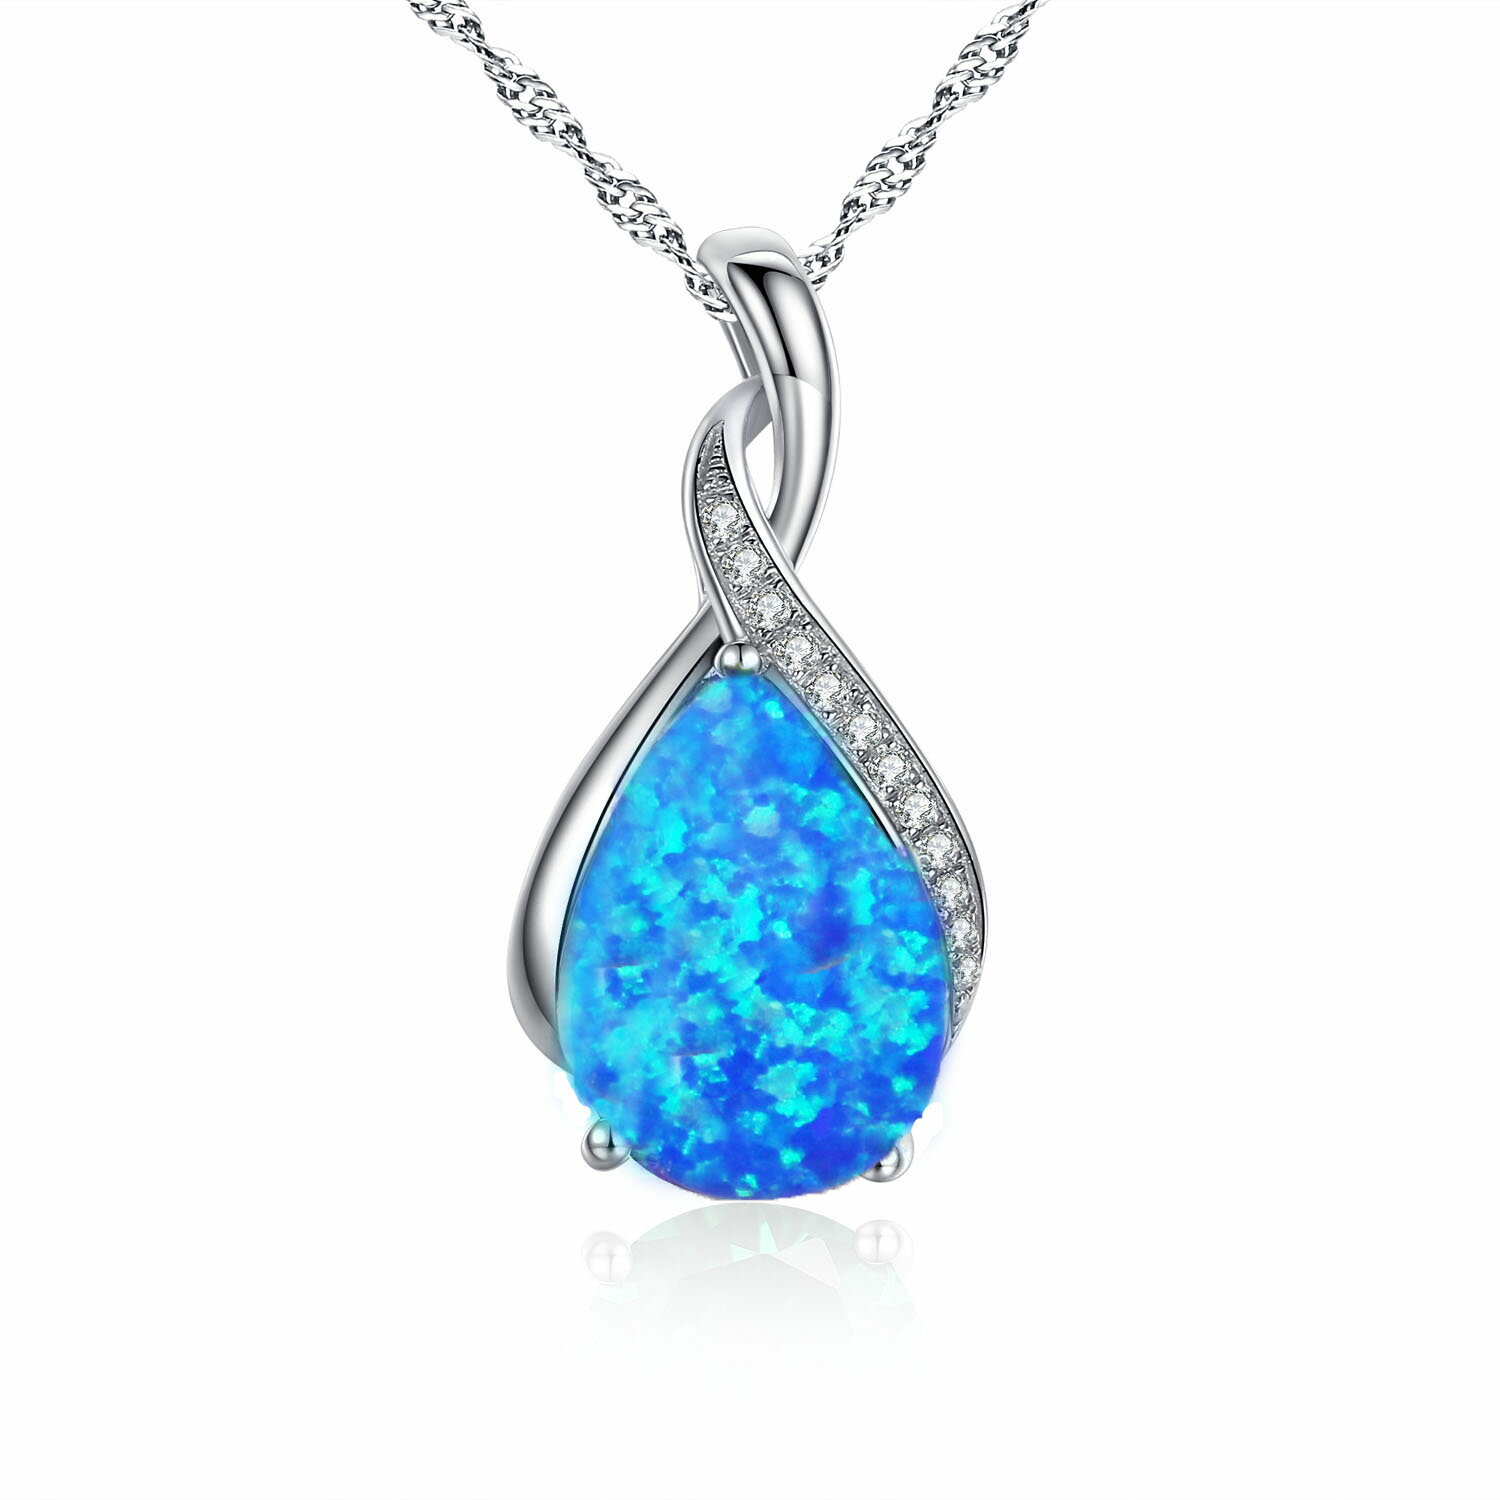 crystal crystalis product shop neck opal fire necklace